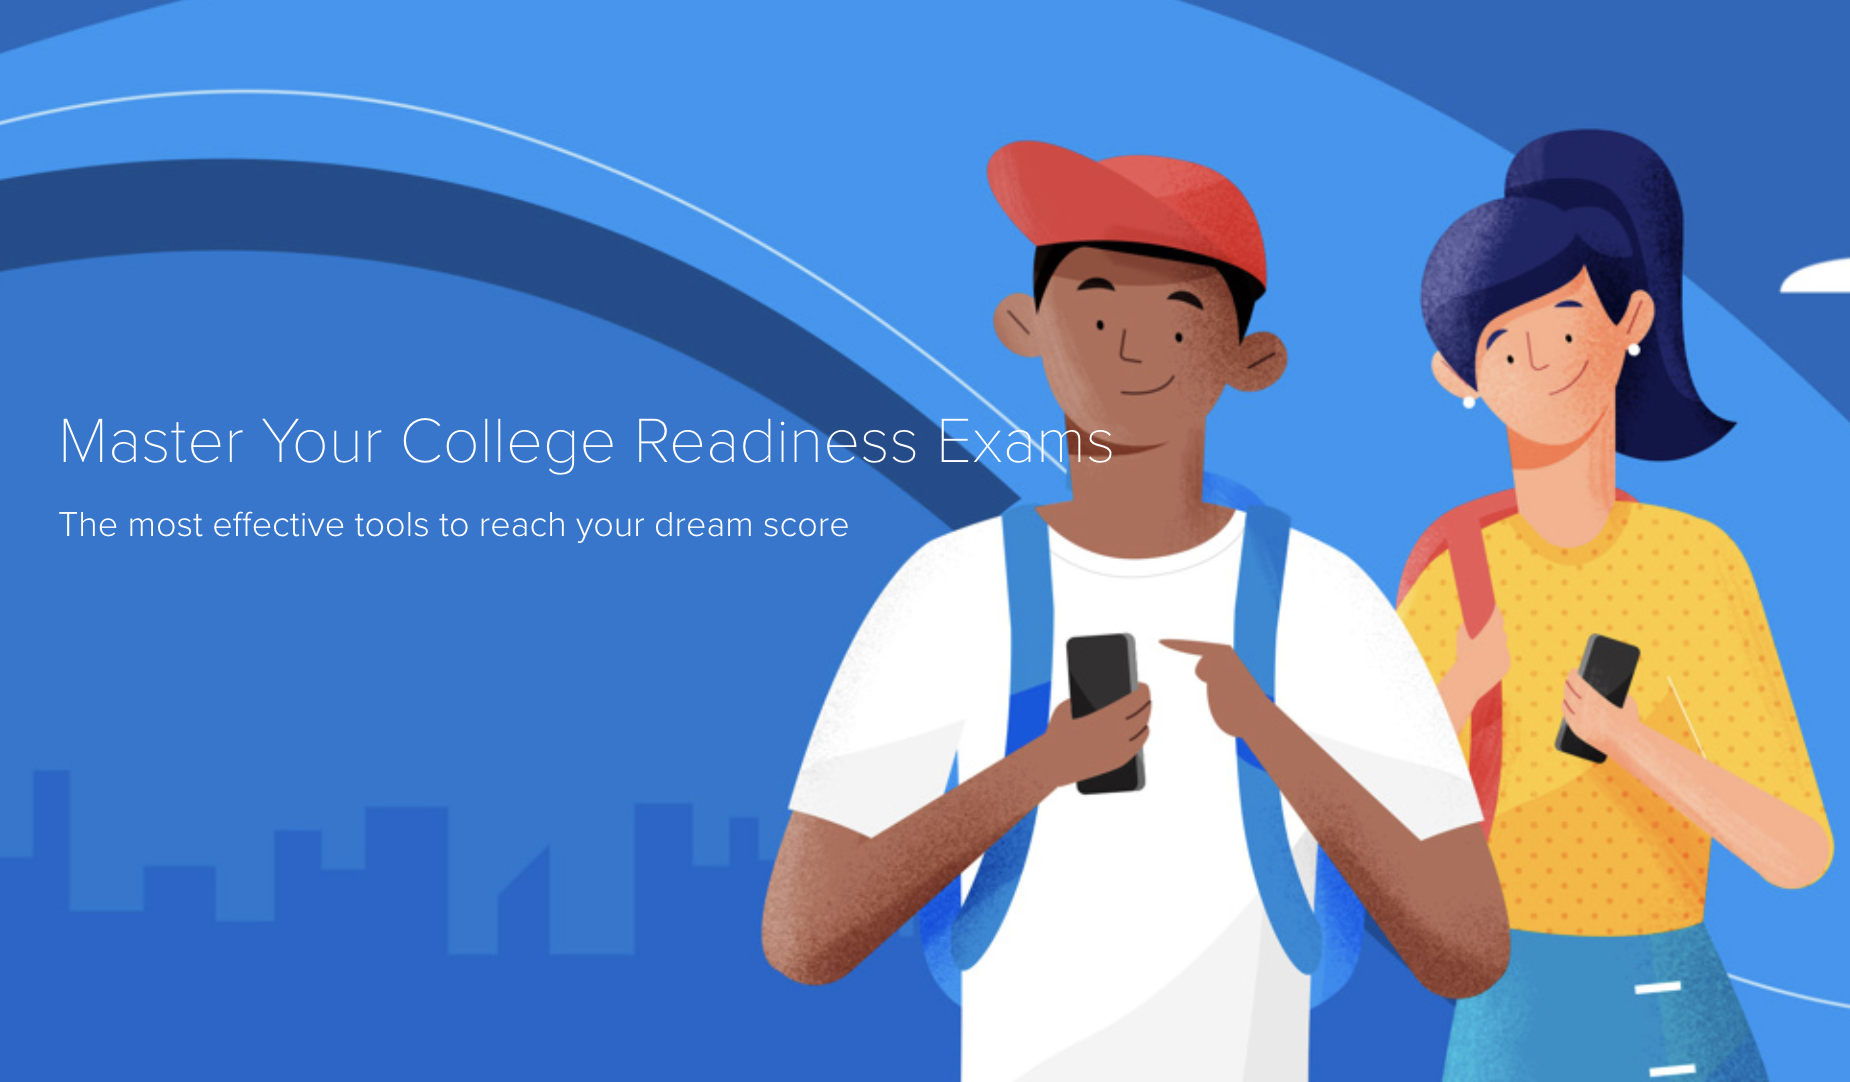 Free SAT/ACT practice tests, tutorials, step-by-step solutions, and more. Designed to help students land their dream score without the expensive price tag.